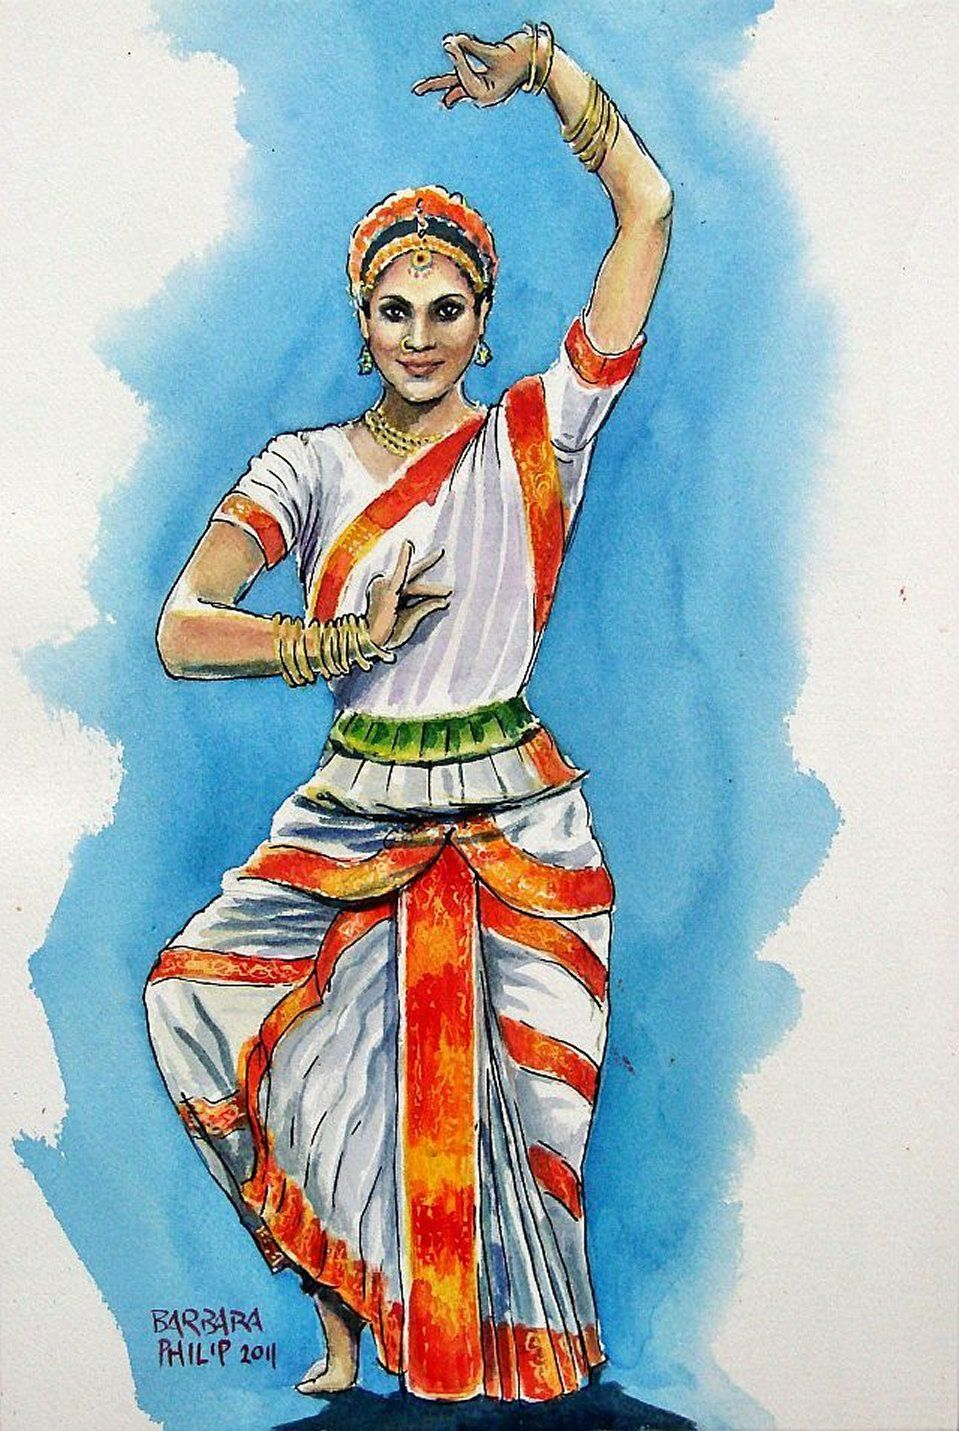 Pin by White Night on painting   Pinterest   India, Indian art and ... for Abstract Painting Of Indian Dancers  56mzq